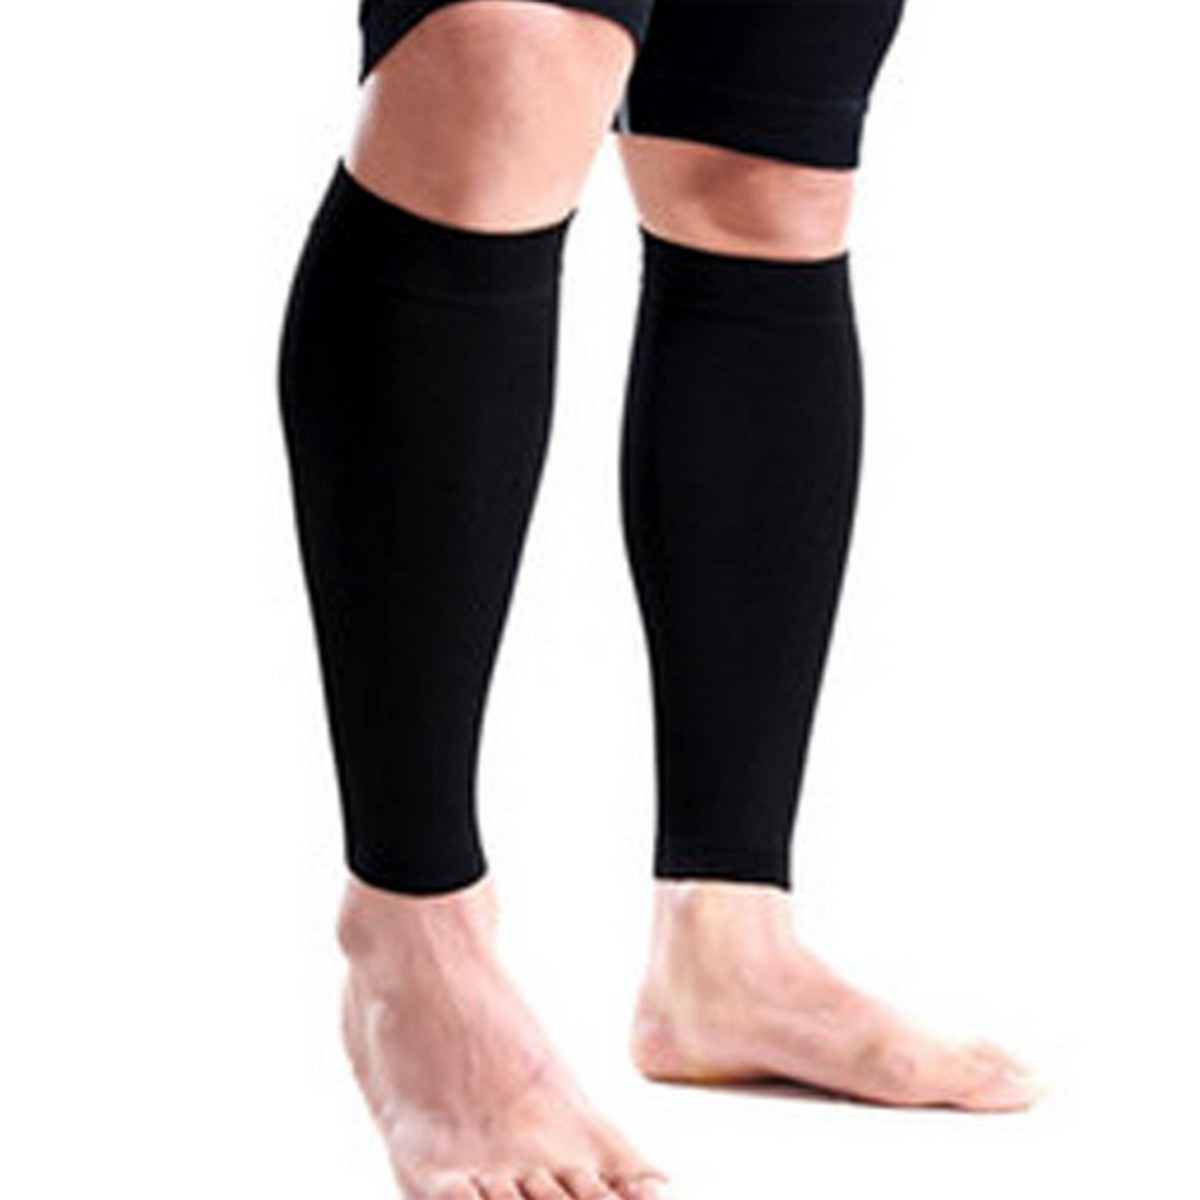 Pair of Temporary Sleeves for Legs Cover Comfortable and Stretchable Fabric